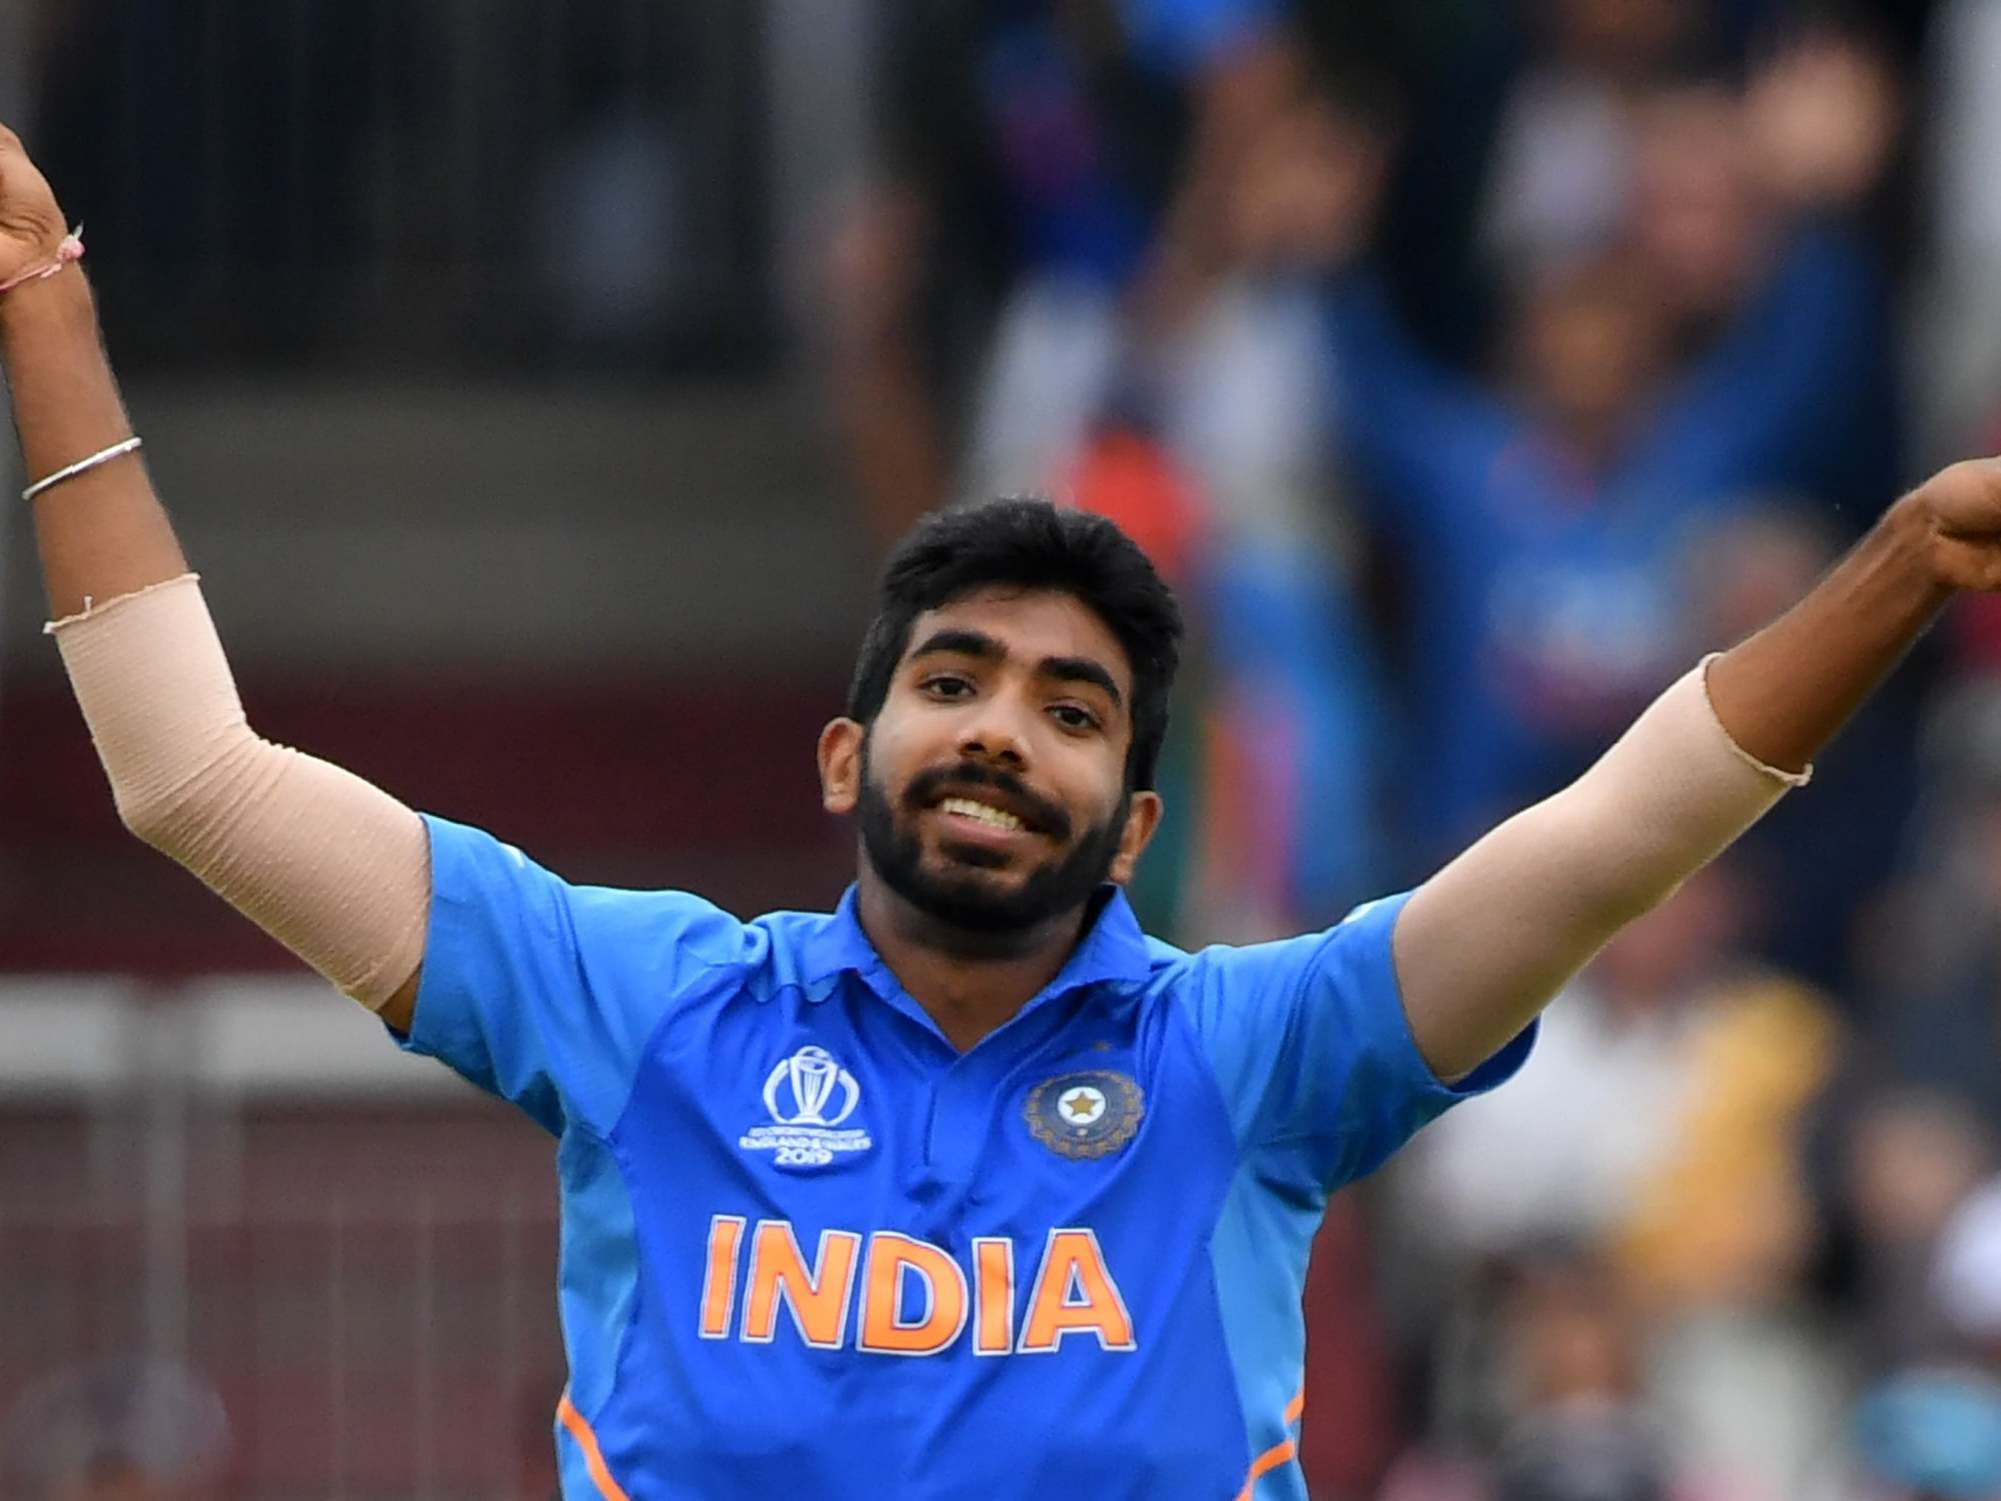 Cricket World Cup 2019: India mourn the present but future is bright with Jasprit Bumrah